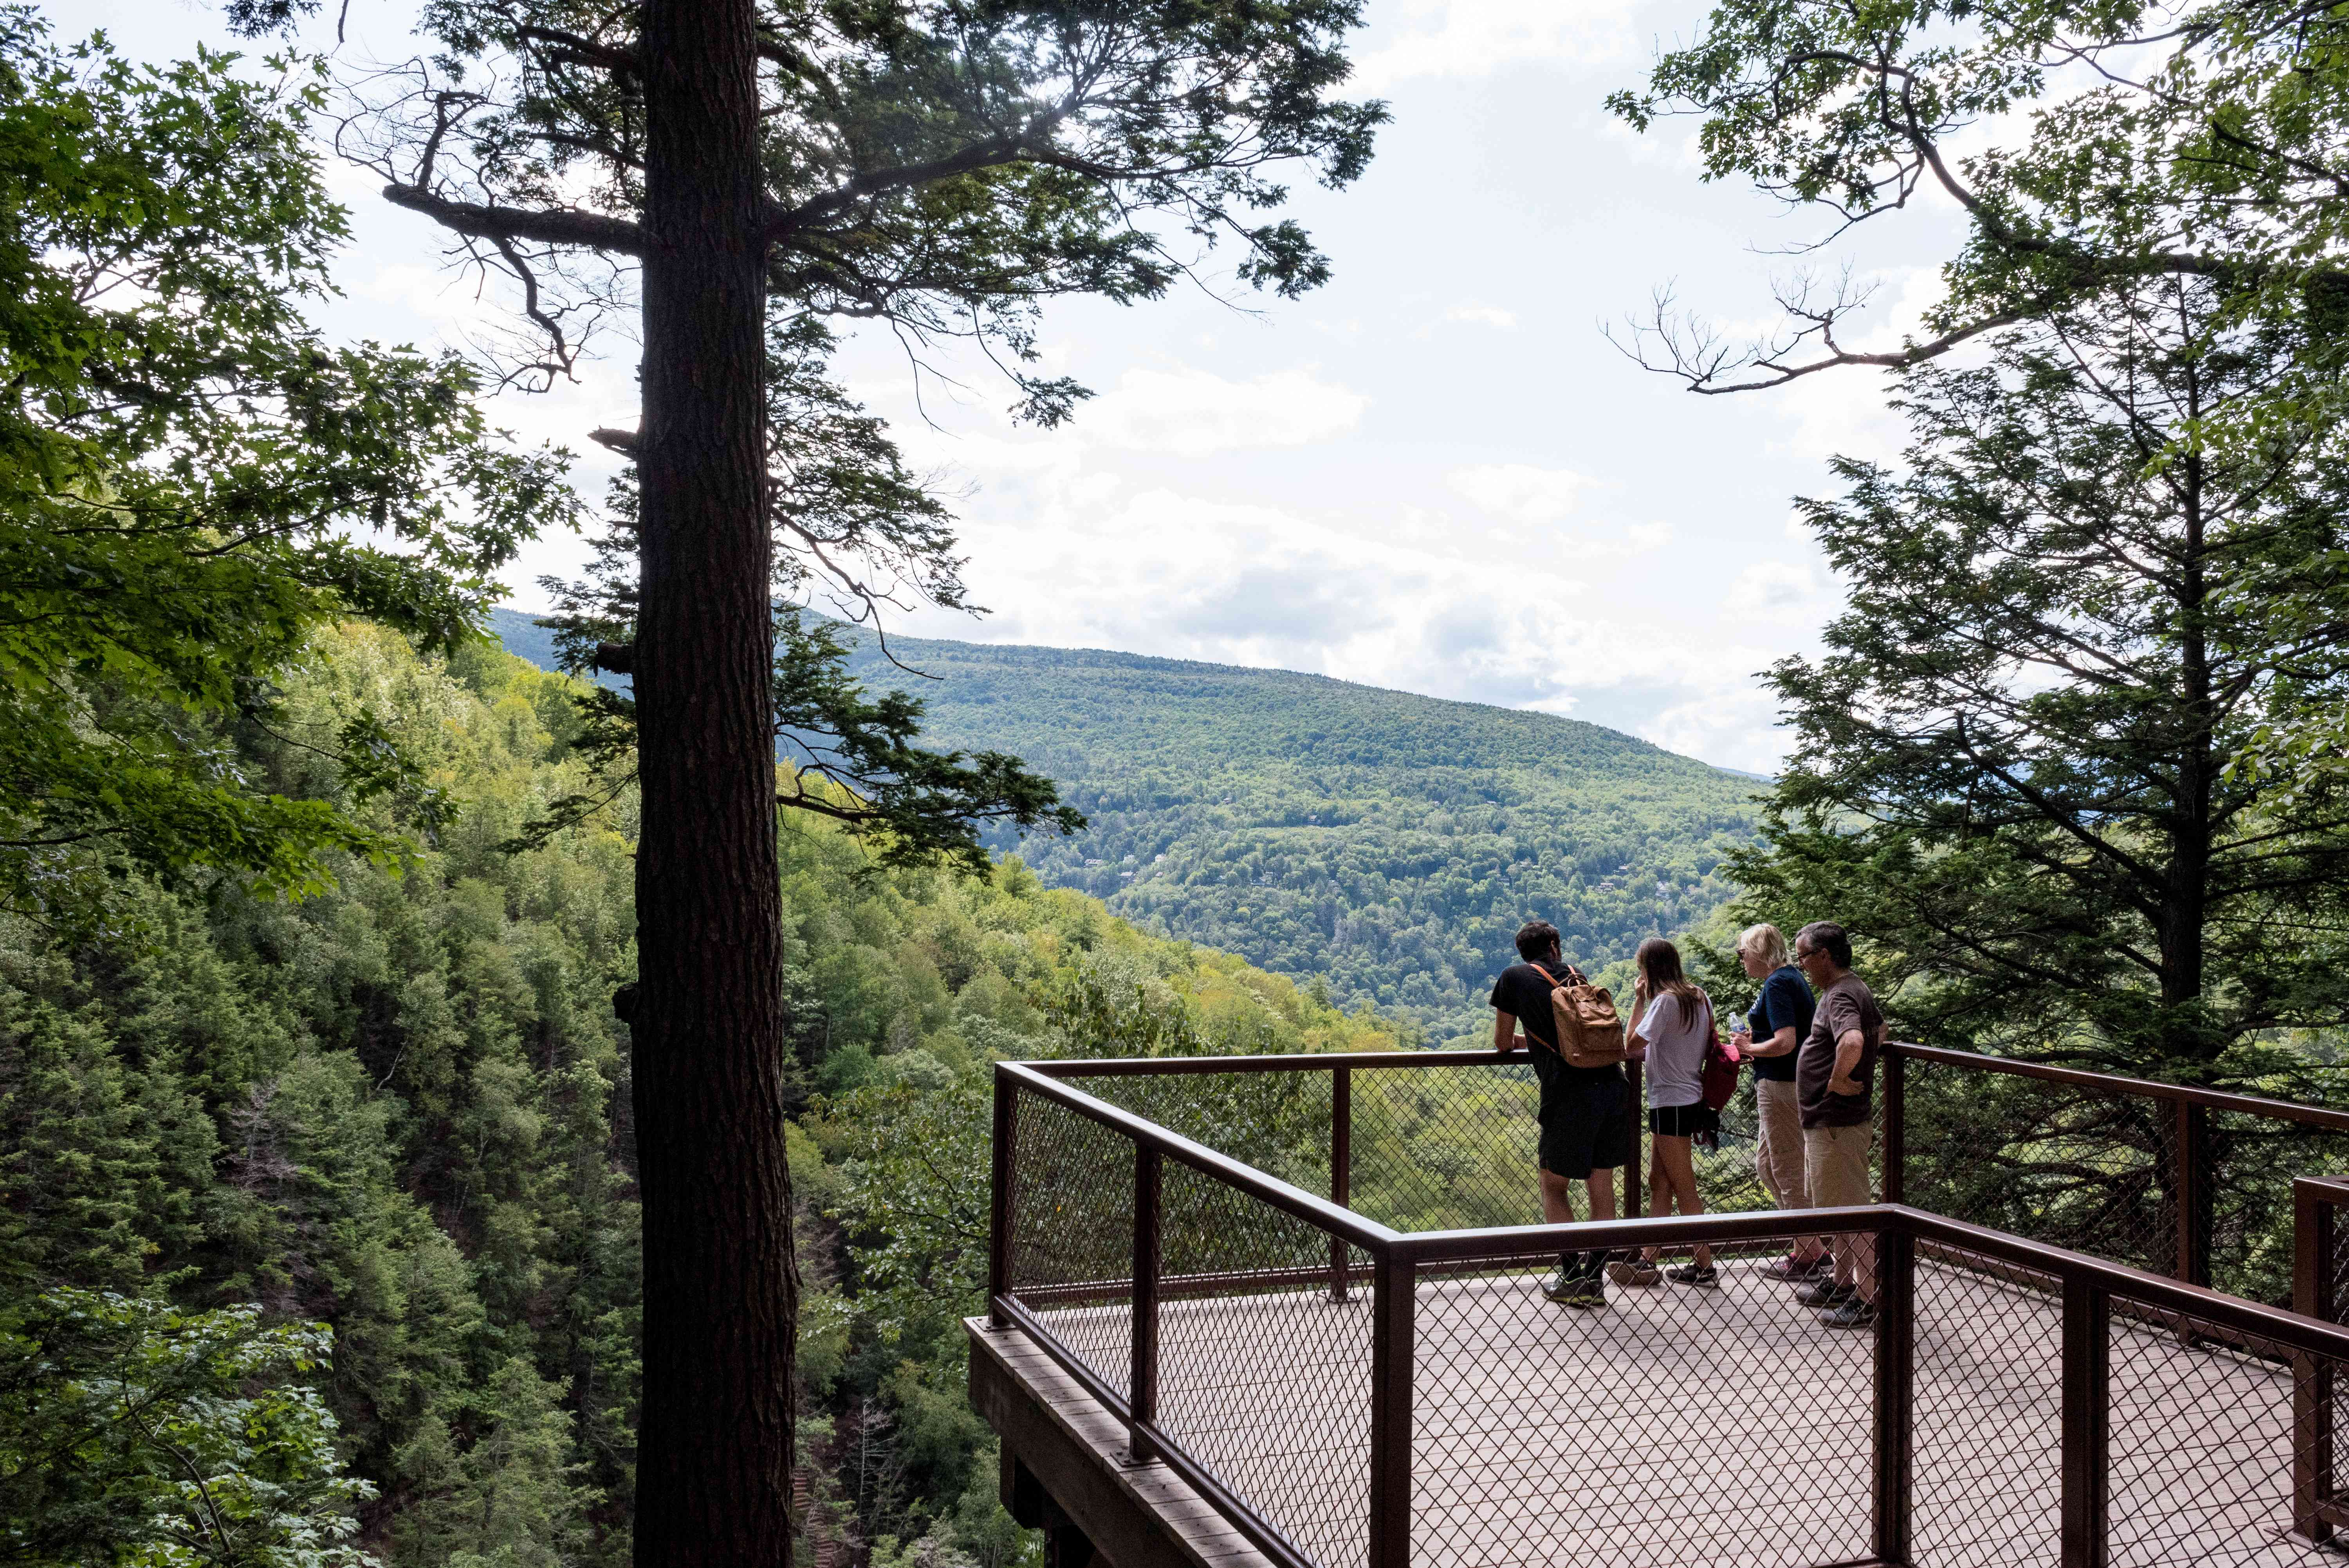 A lookout point on the Kaaterskill Falls hike